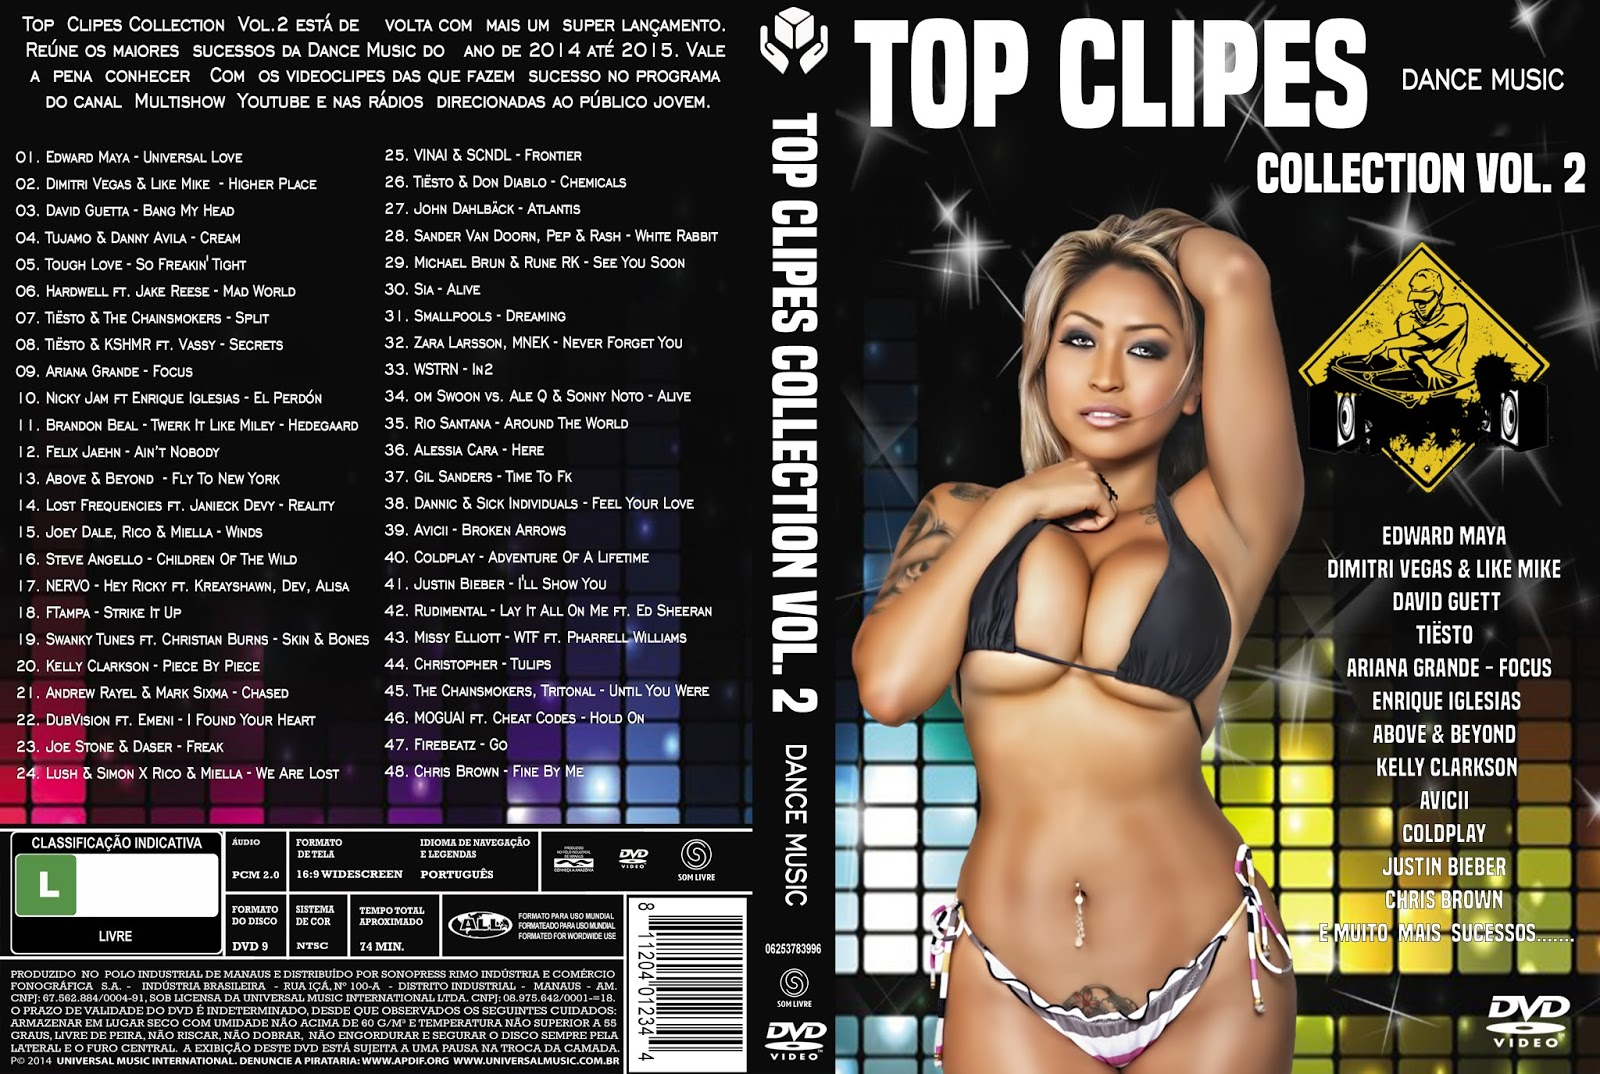 Download Top Clipes Collection Vol.2 Dance Music DVD-R Top 2BClipes 2BCollection 2BVol